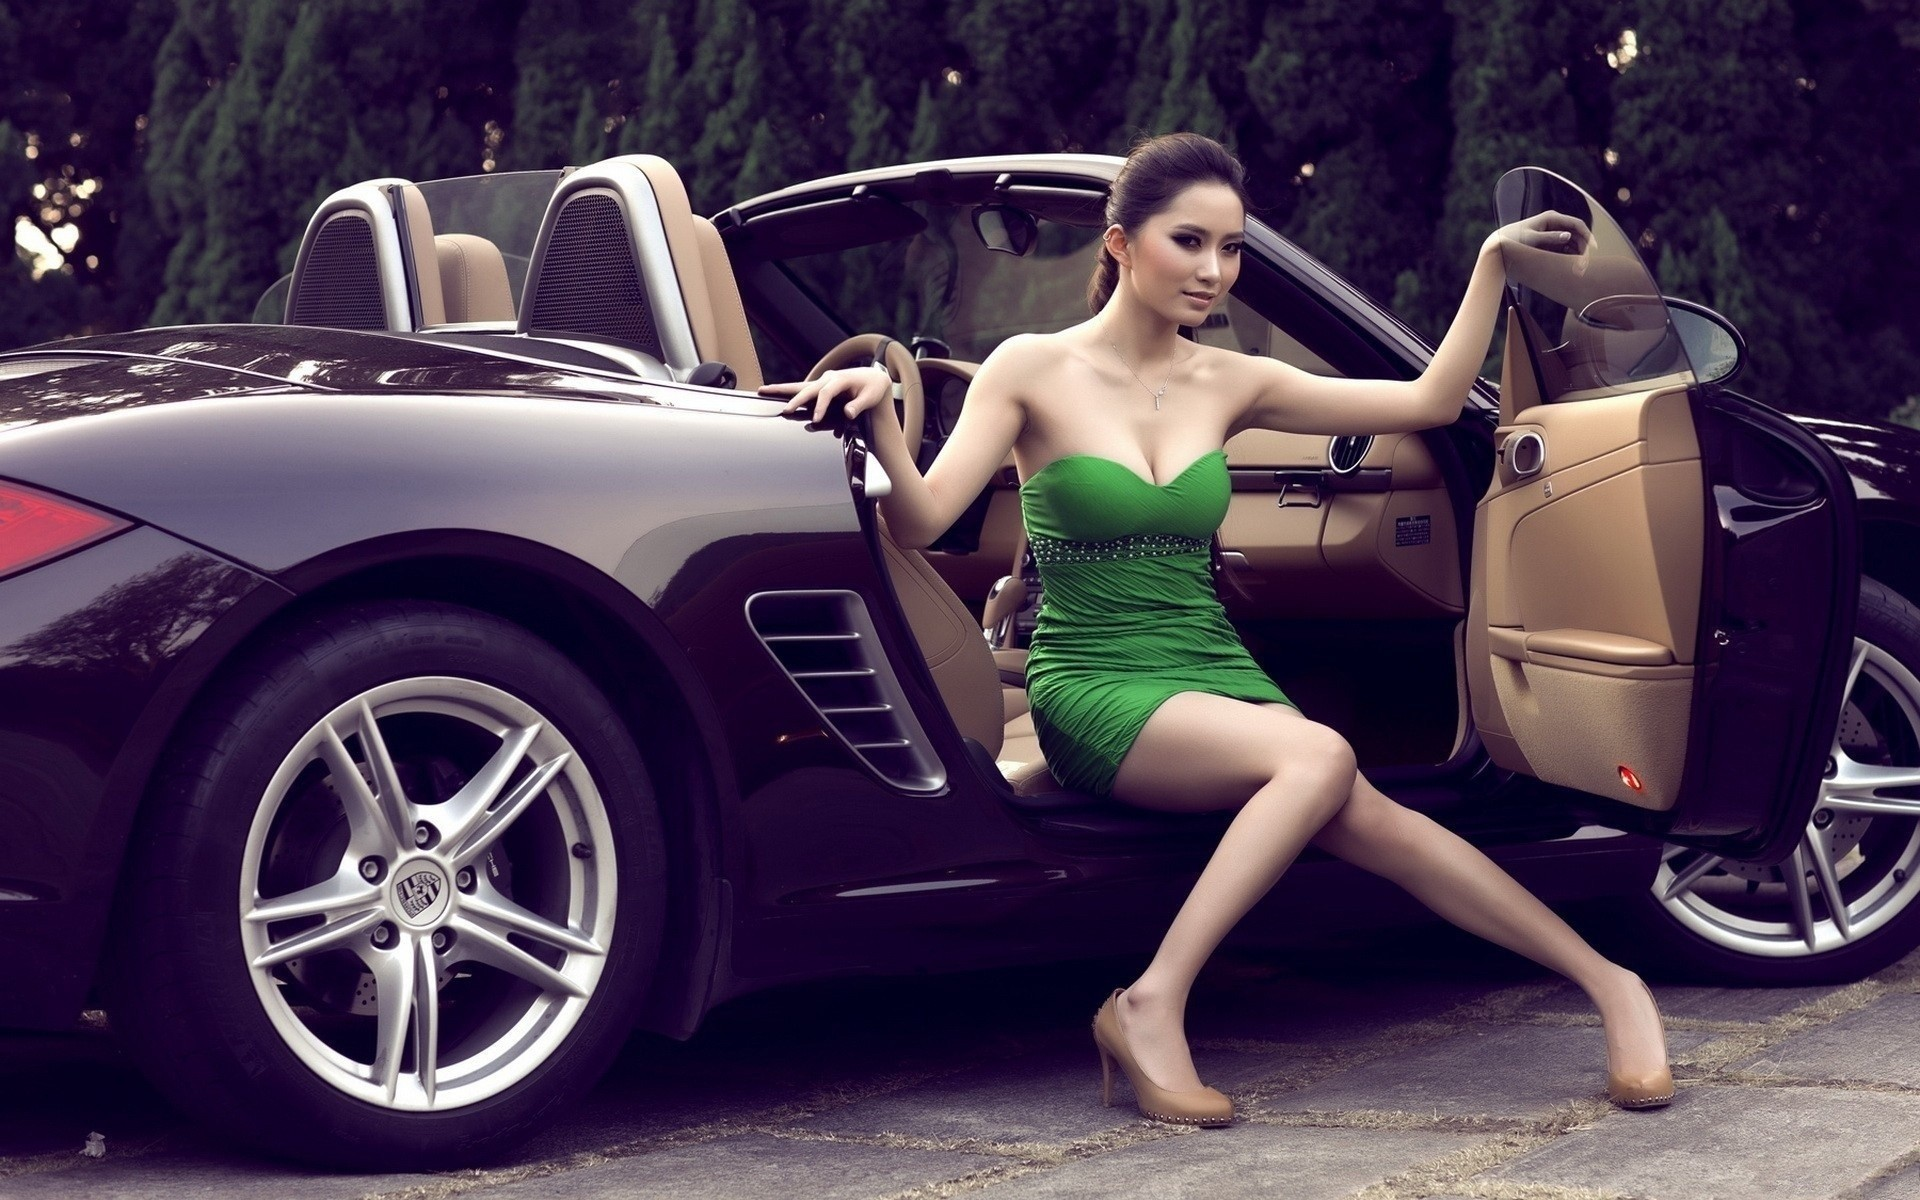 Car Girl Free Download HD Wallpapers 16491 – HD Wallpapers Site